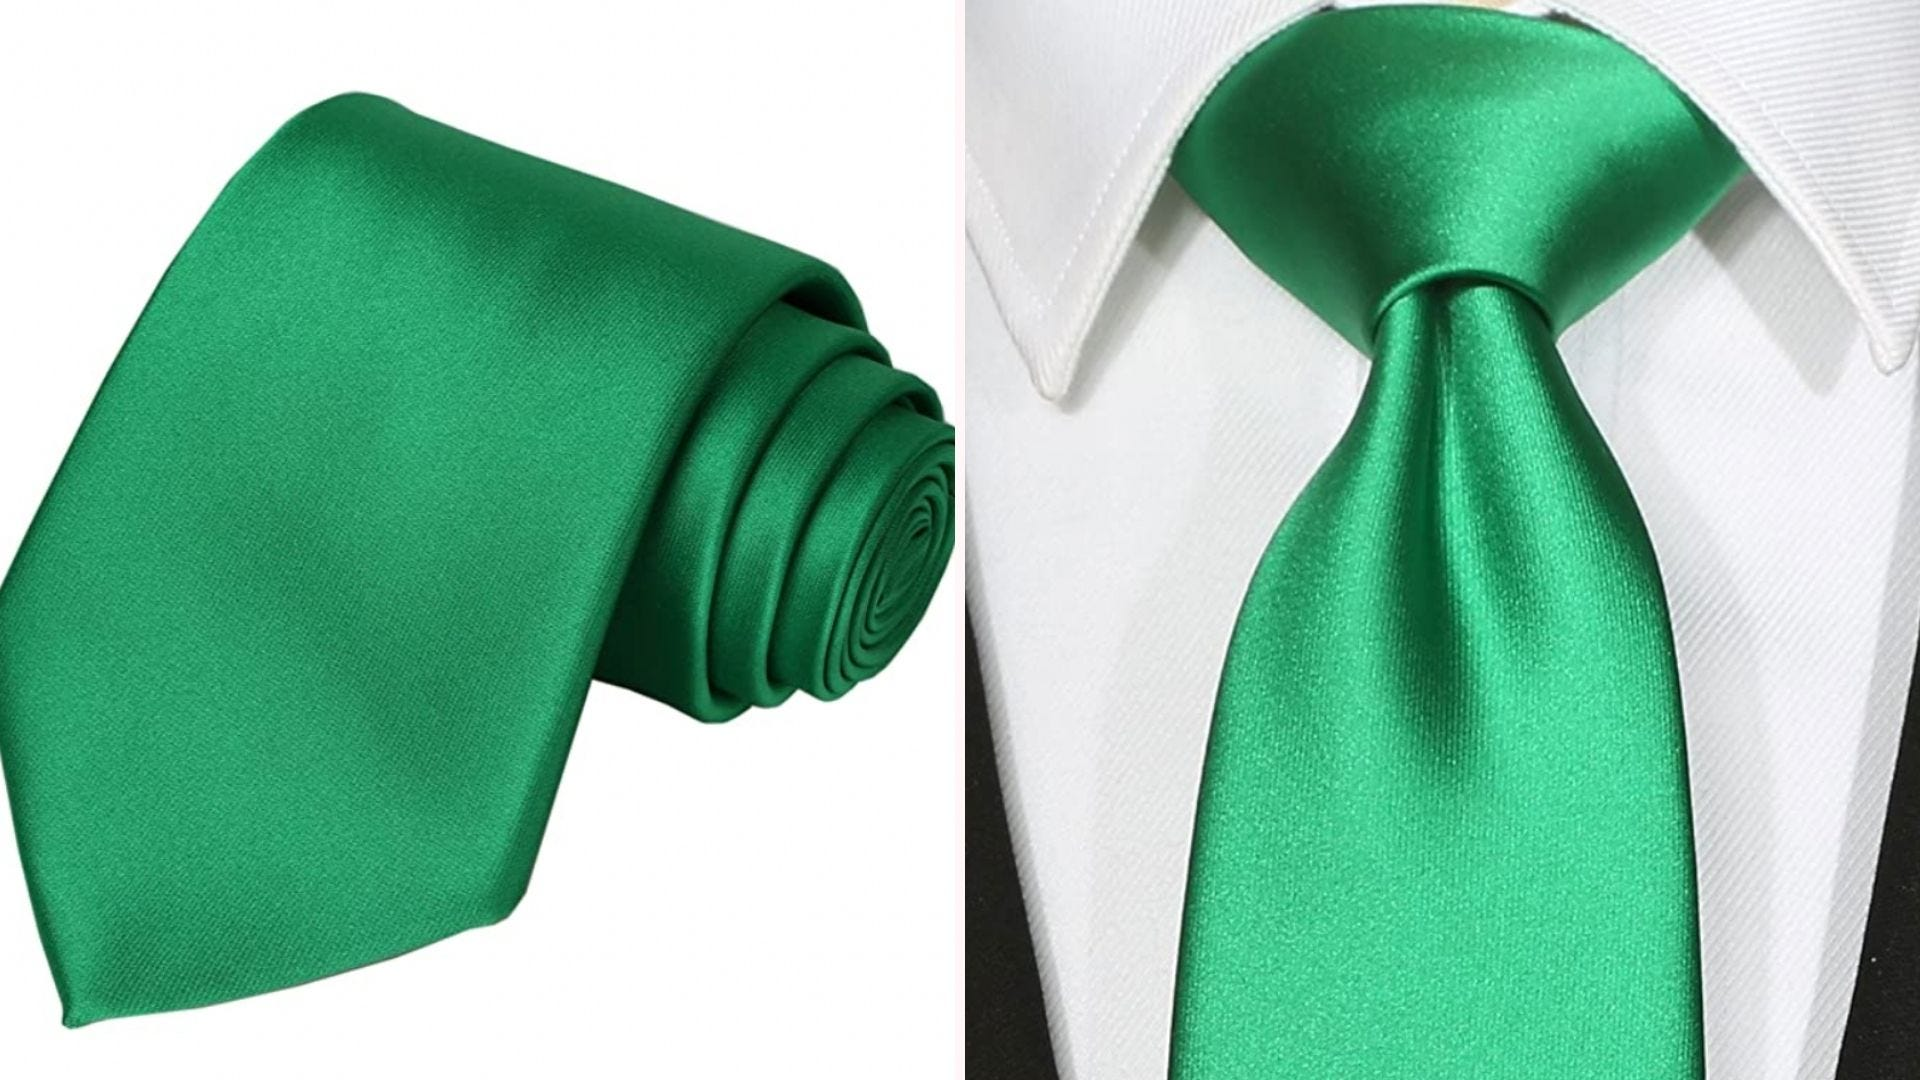 a green shiny necktie rolled up and on a neck over a white collared shirt